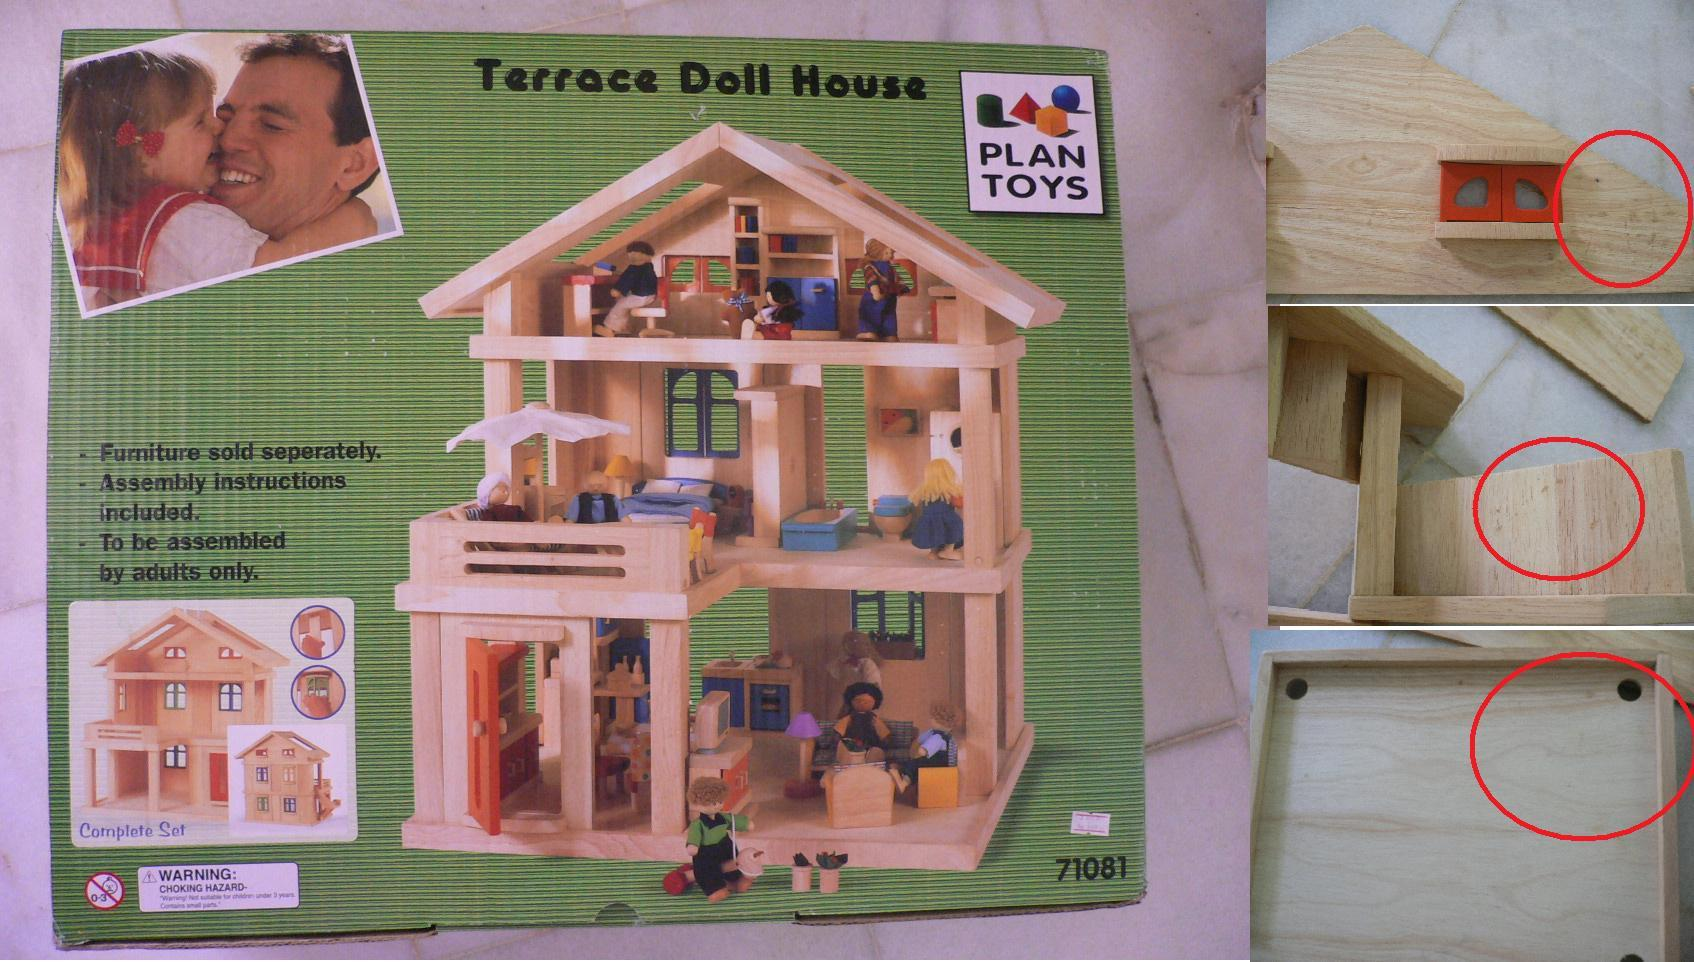 Wooden Toy Plans Catalog : Wooden doll house plans home designs